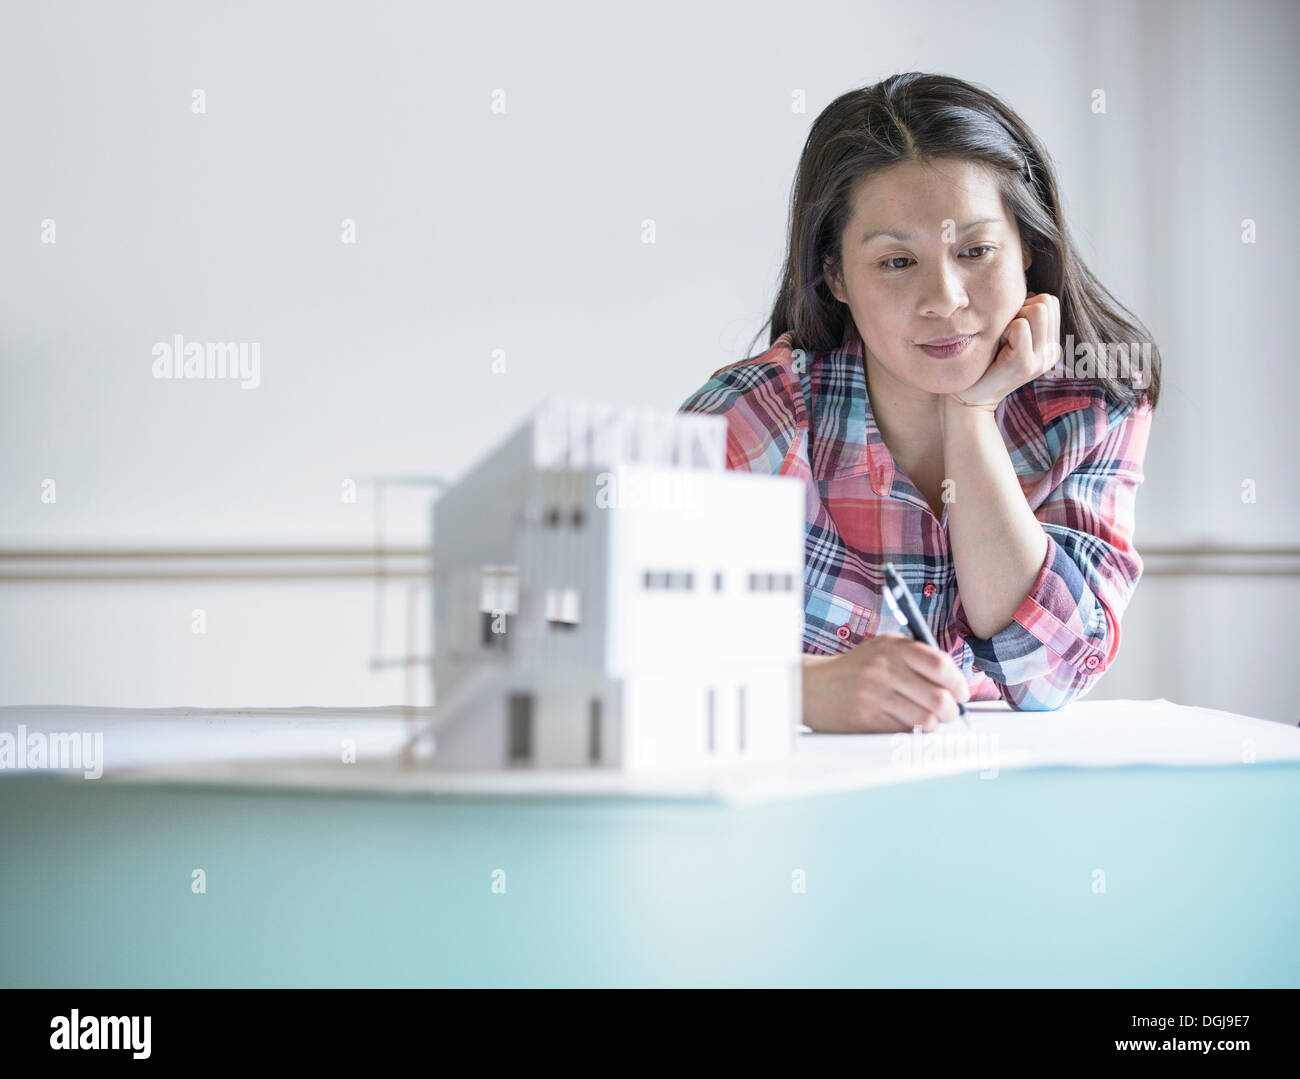 Architect working next to model building Stock Photo